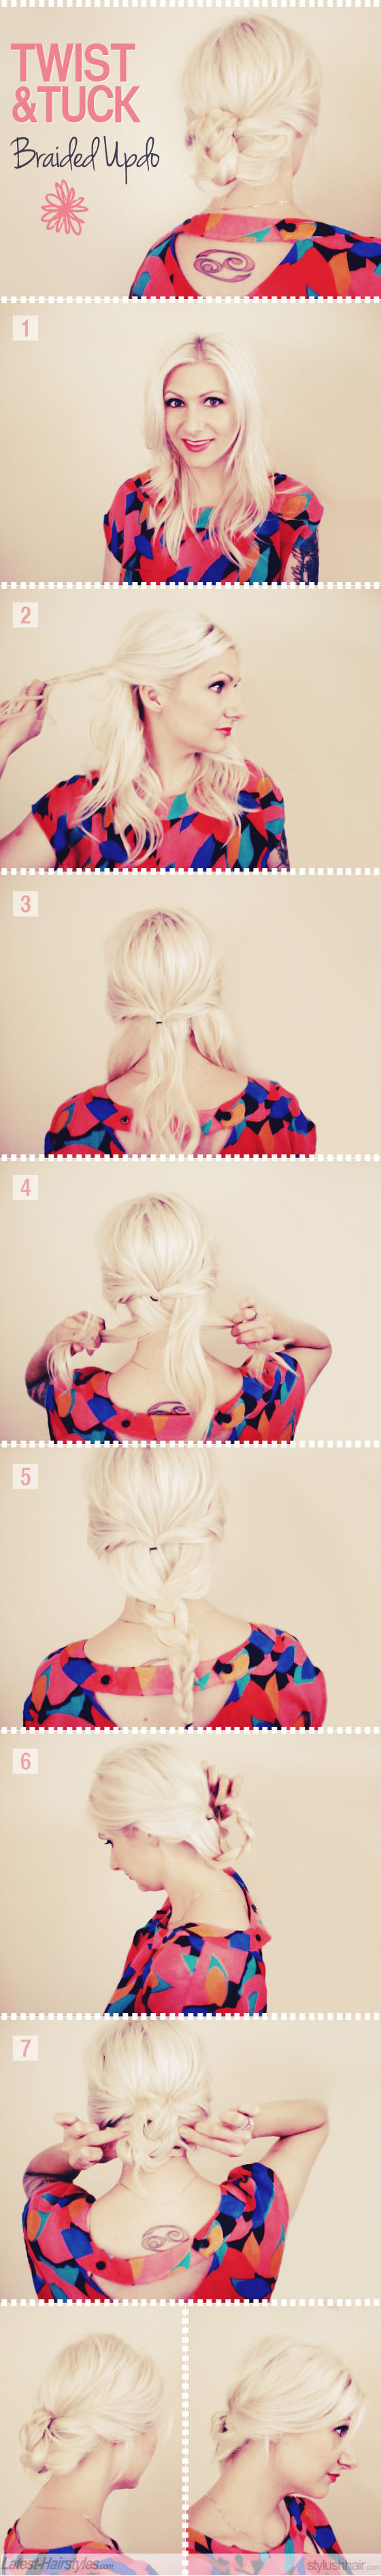 twisted braided updo hair tutorial